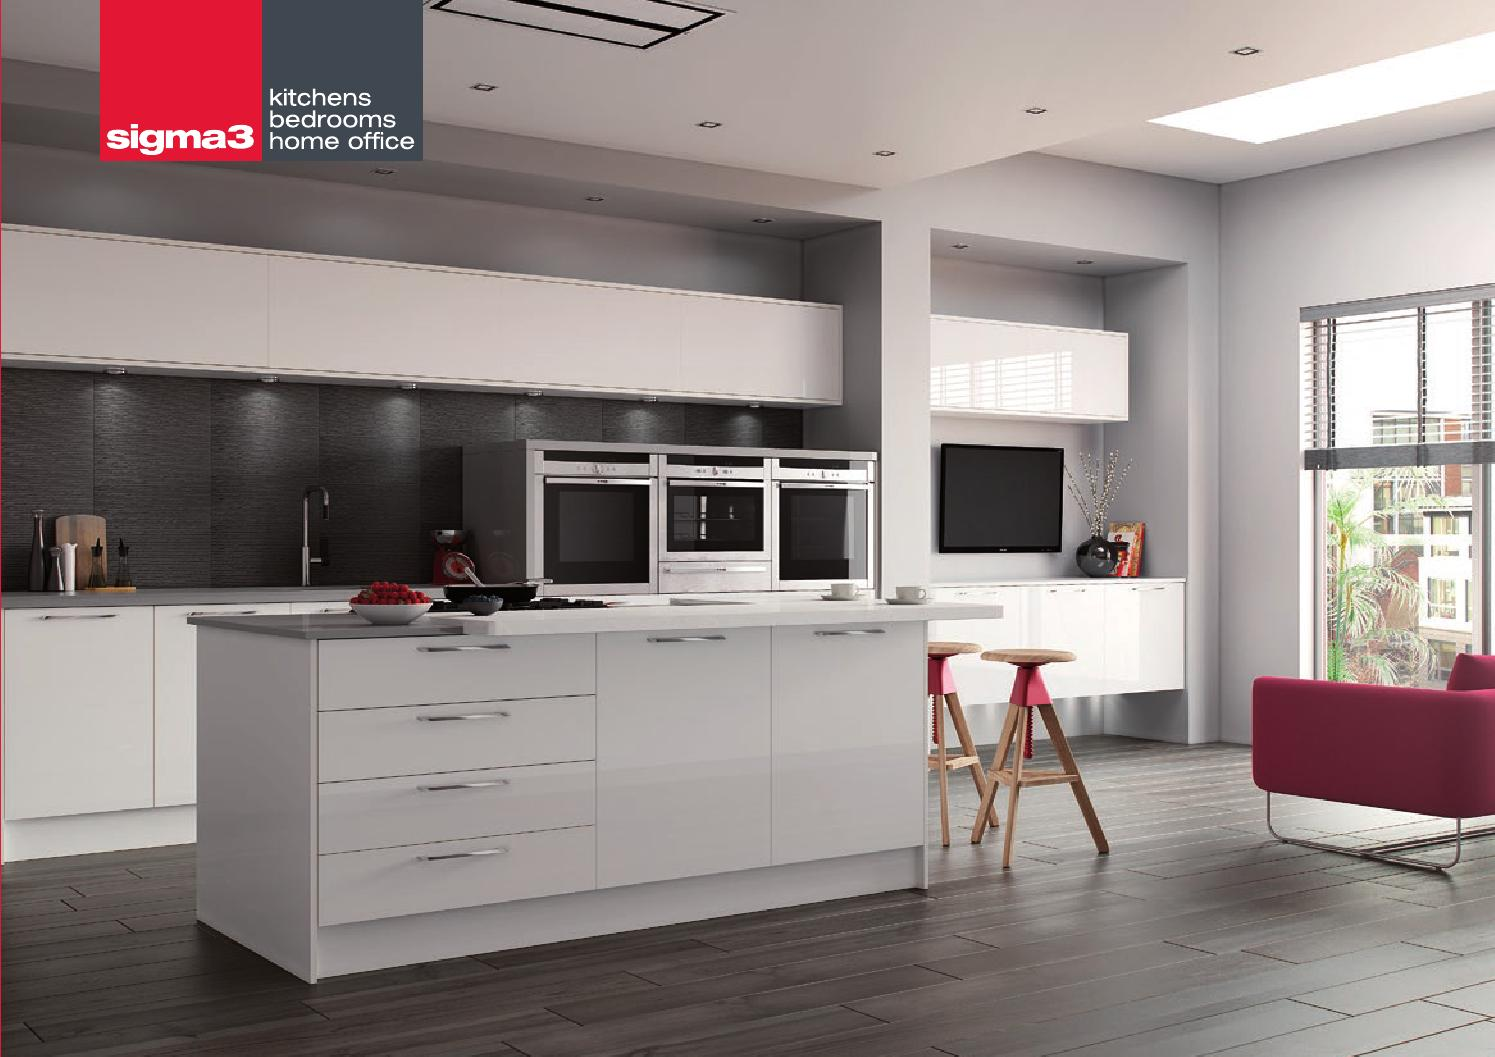 Sigma 3 Kitchens Brochure By S3kb Issuu